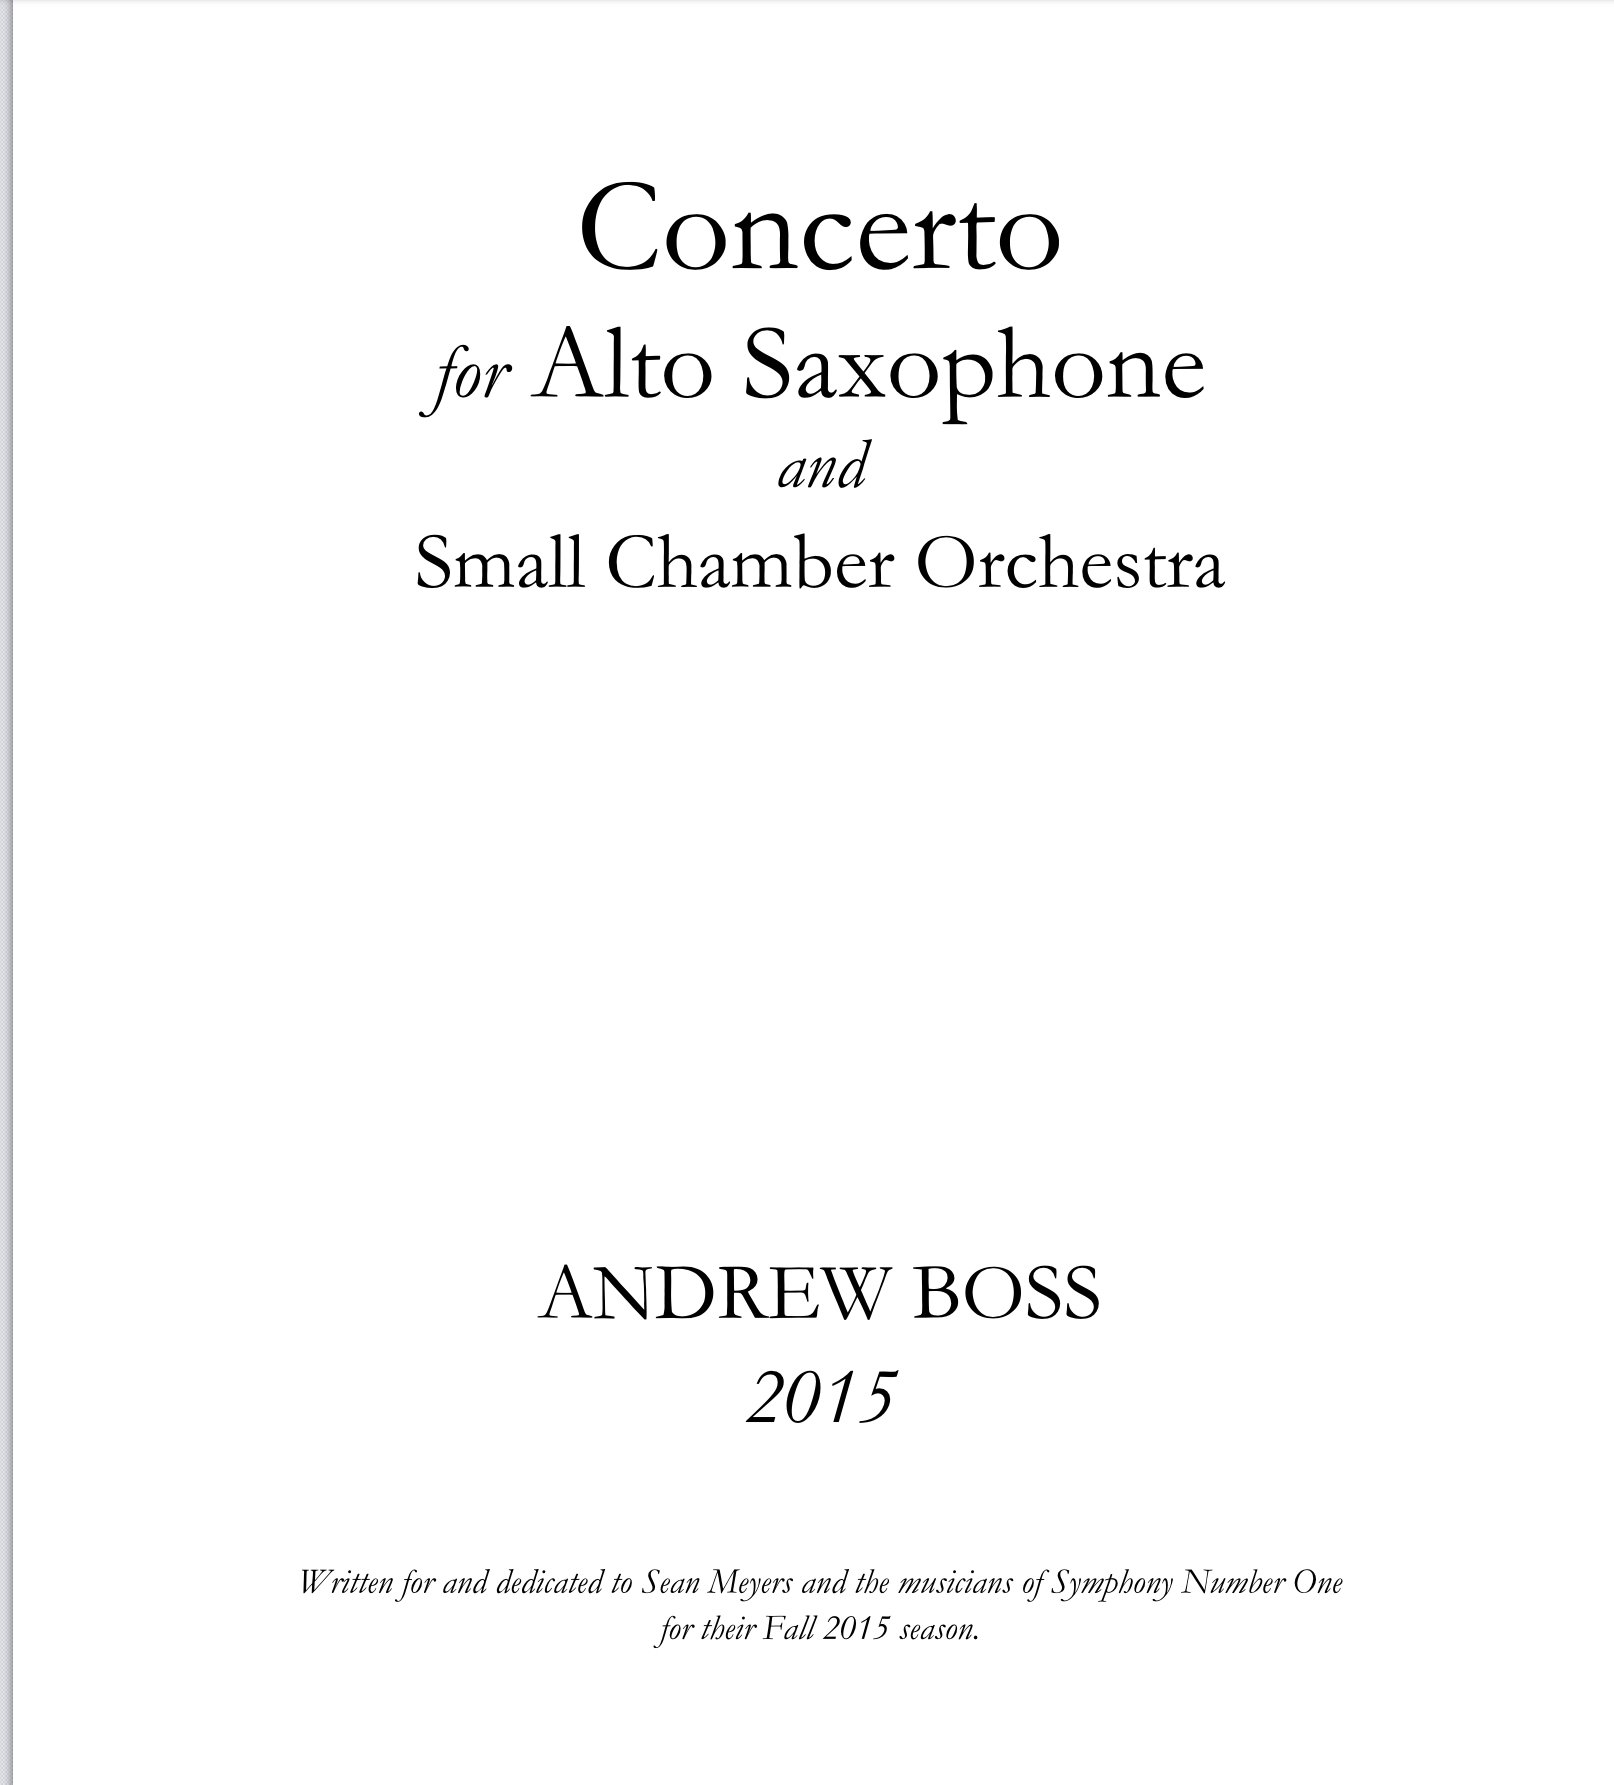 Concerto For Alto Saxophone And Chamber Orchestra  by Andrew Boss